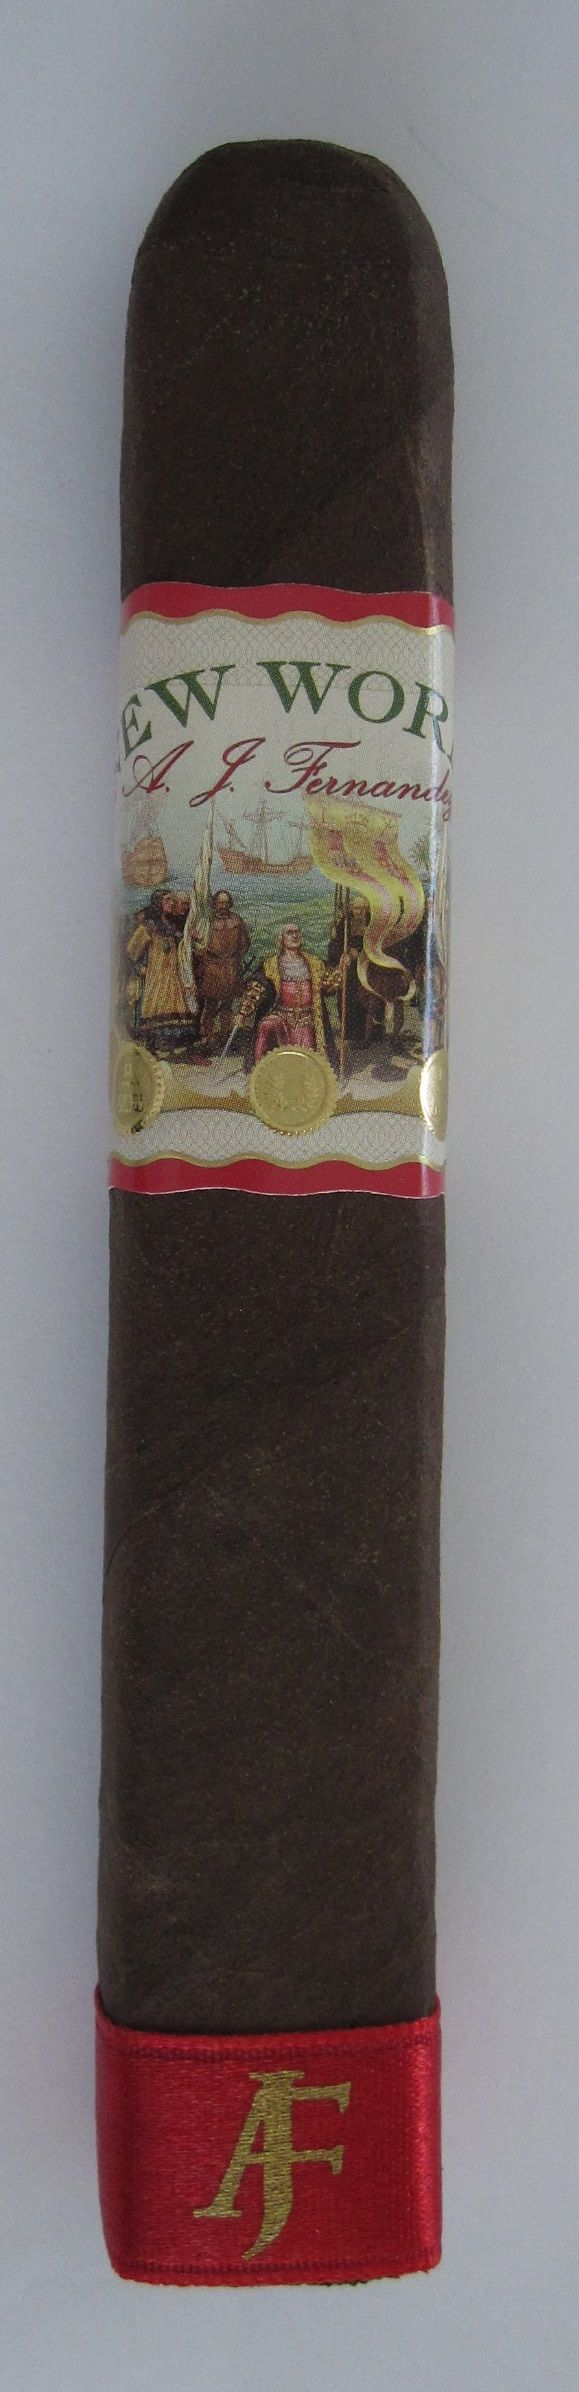 Review of New World Cigar by AJ Fernandez:  http://cigarczars.com/review/new-world-cigar.htm .